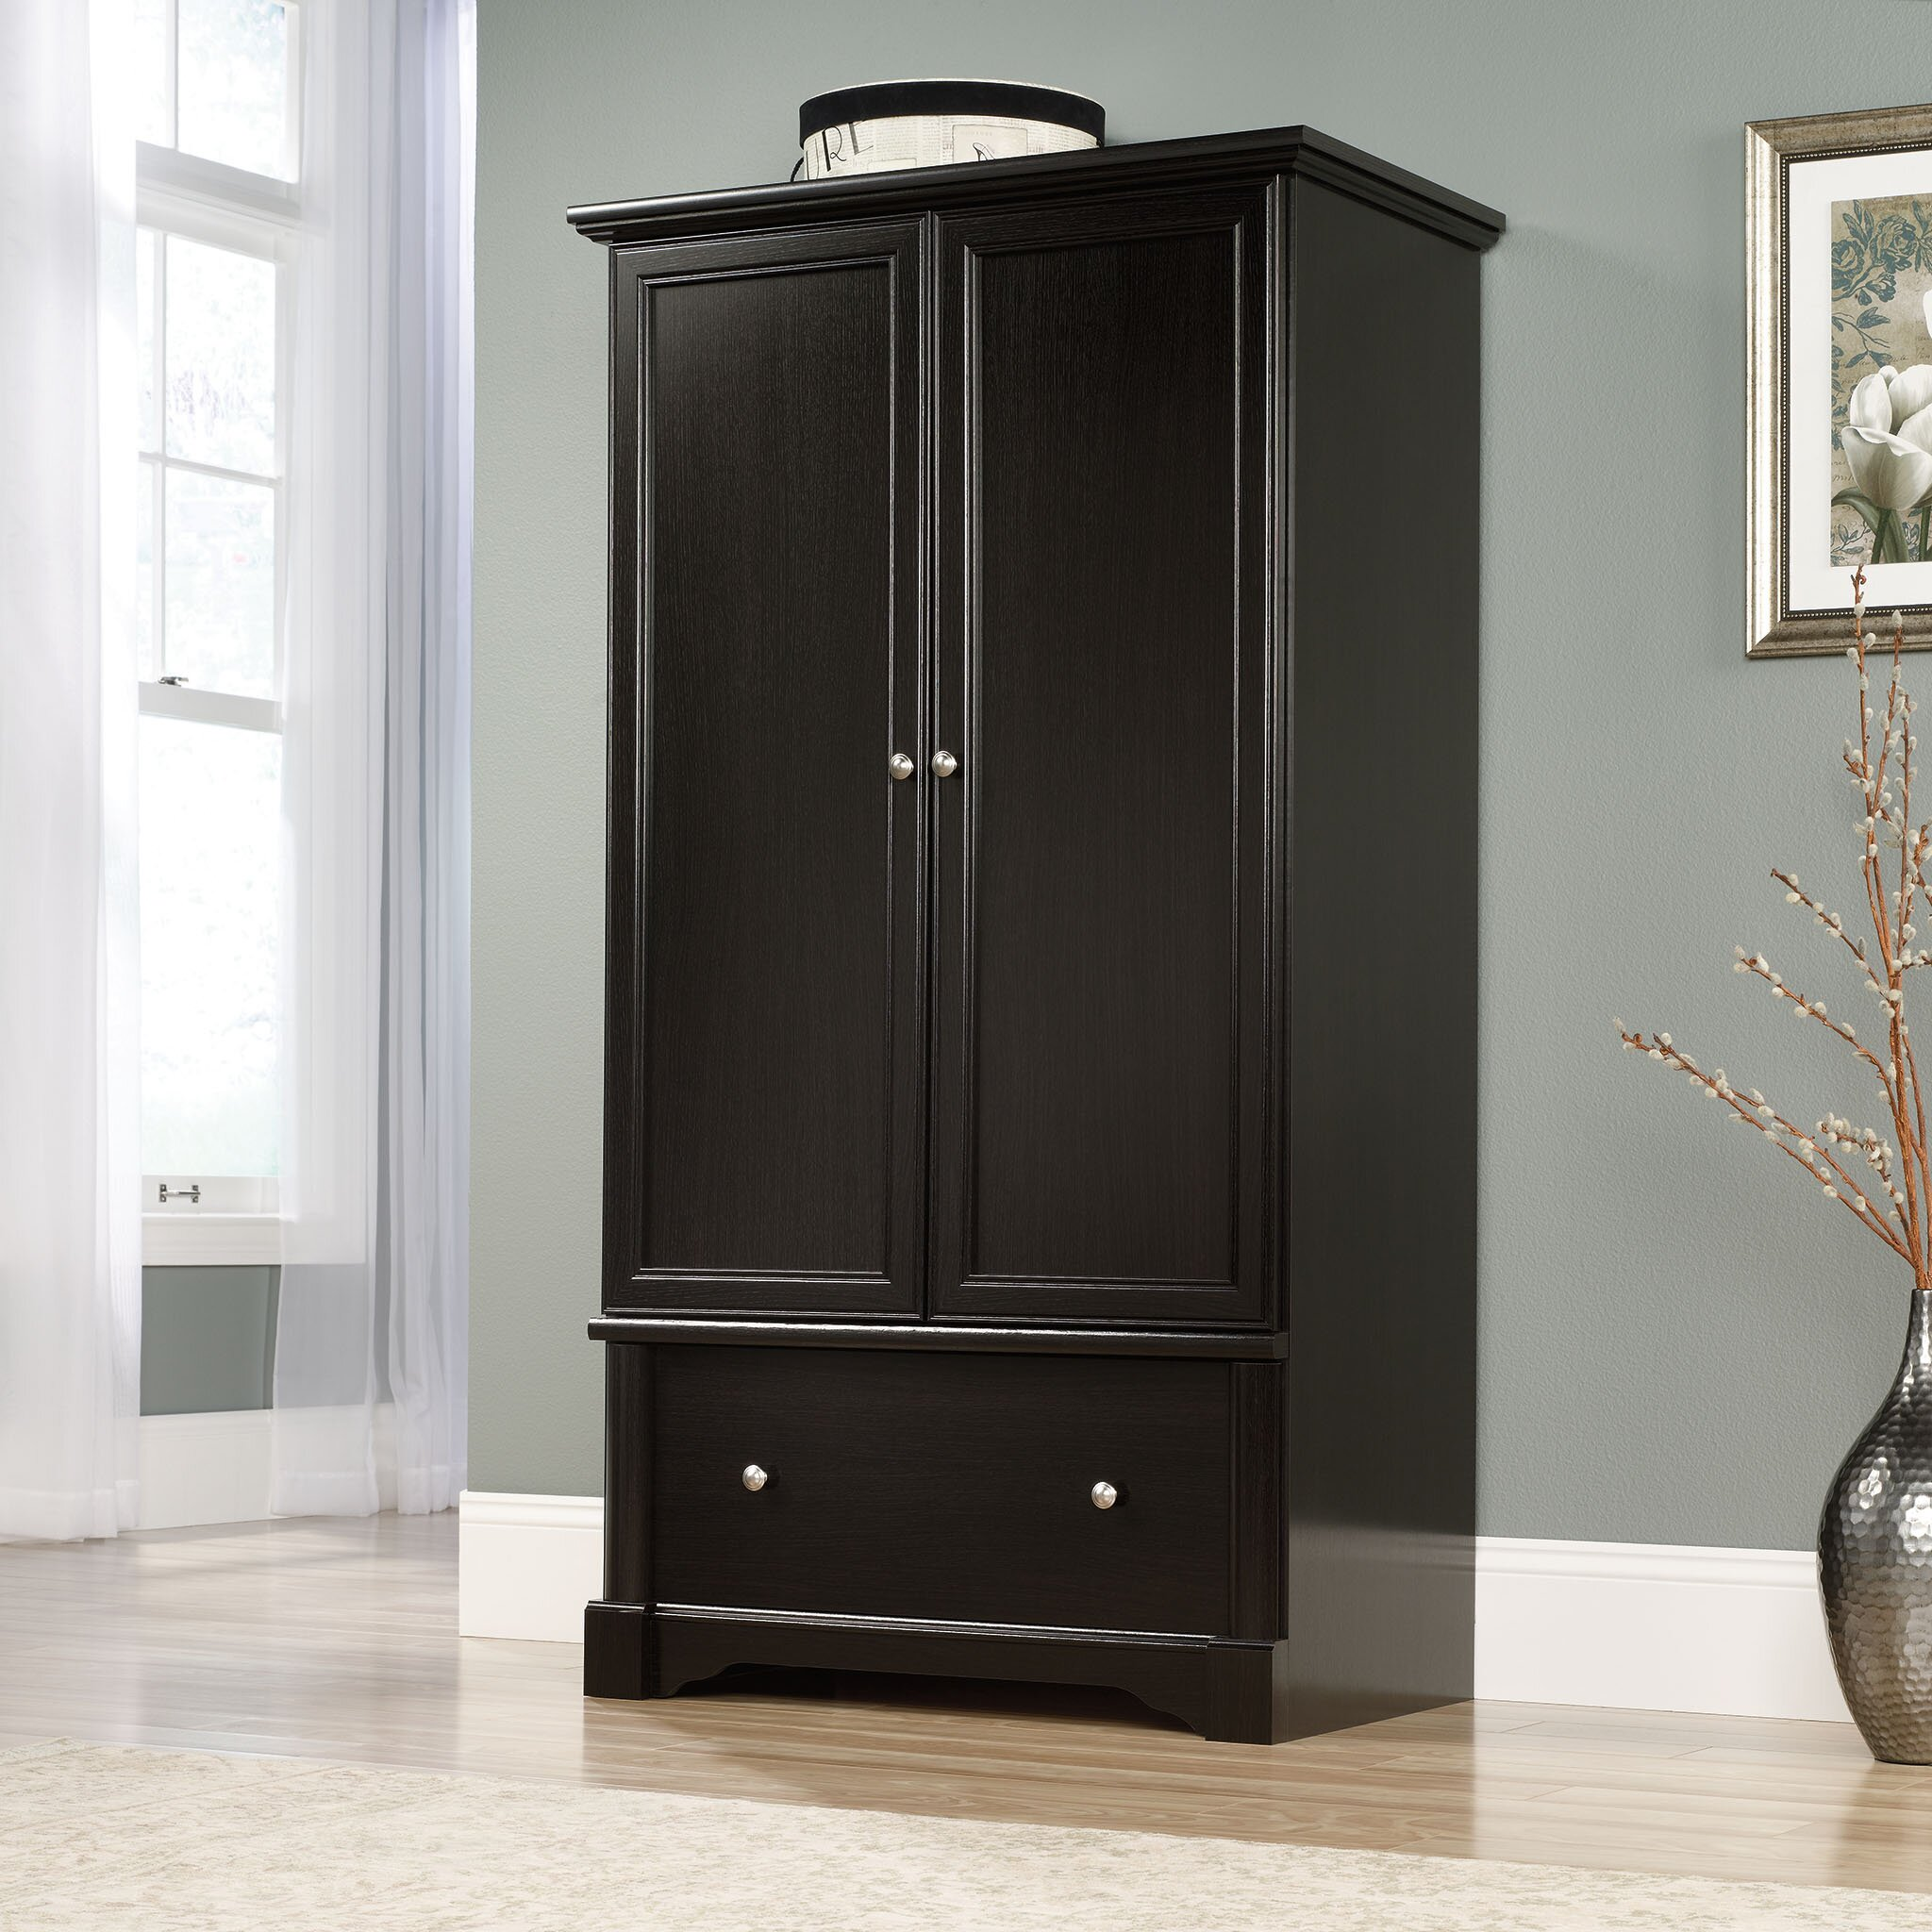 Darby Home Co Hennepin Armoire & Reviews